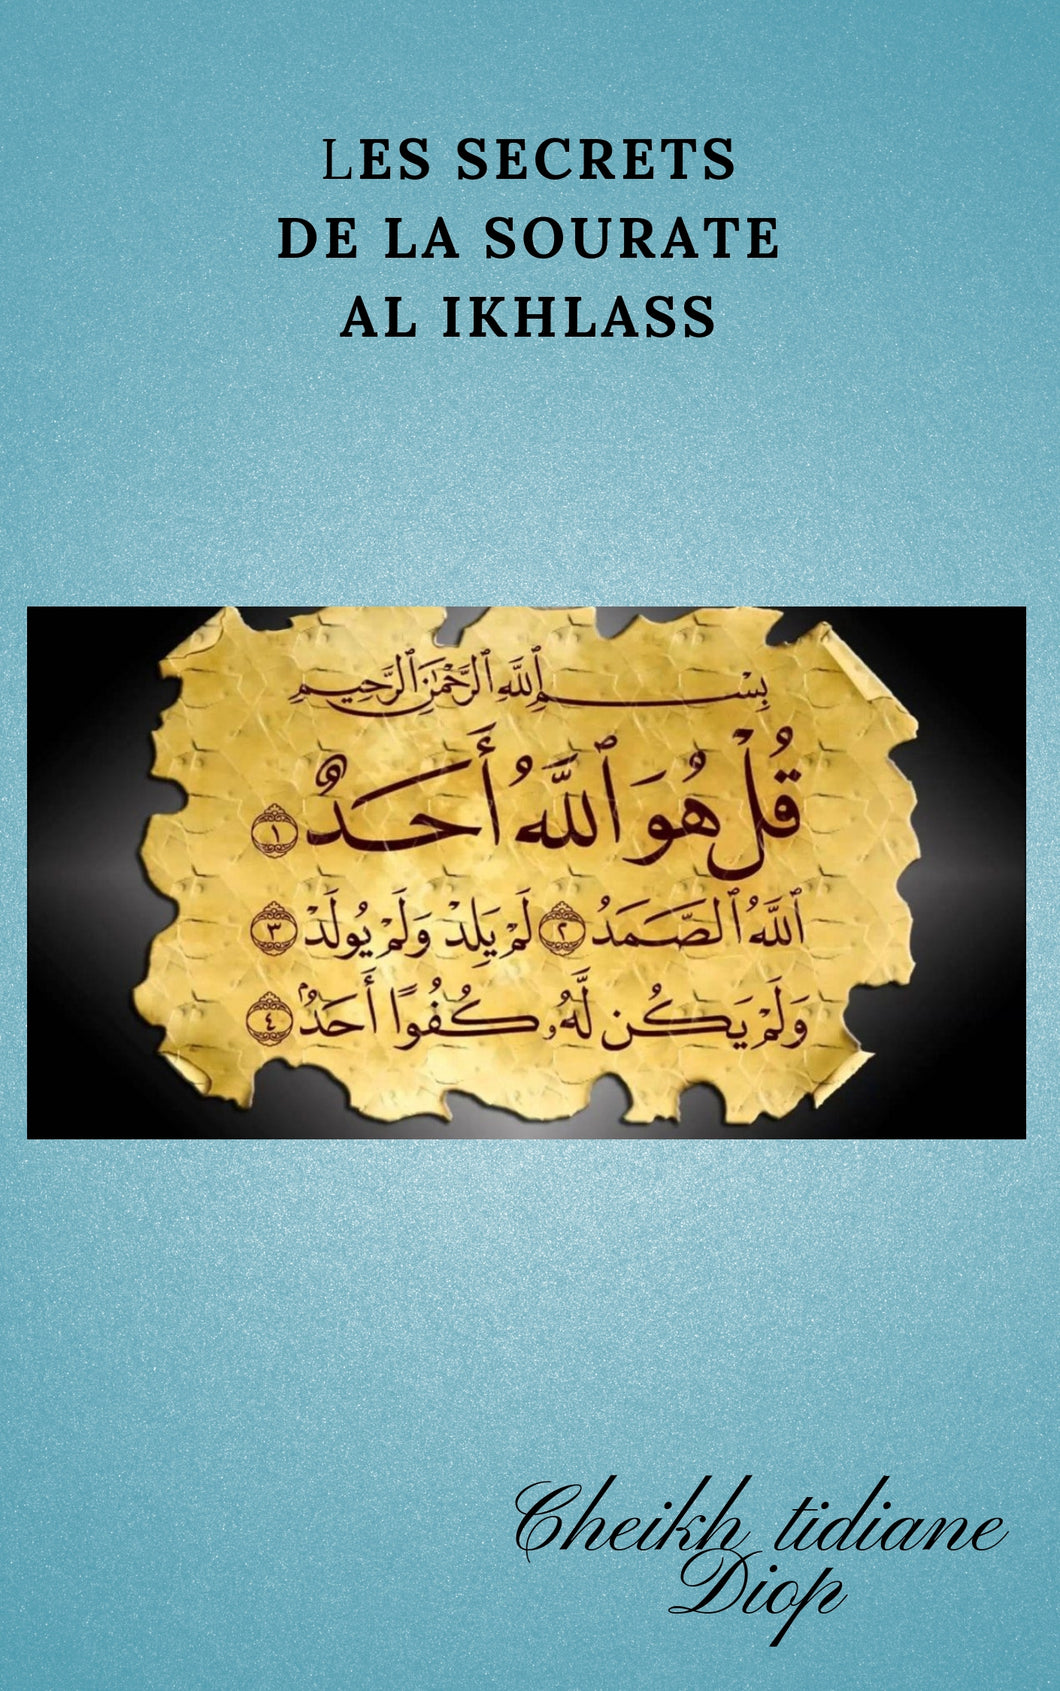 Les secrets de la sourate Al Ikhlass